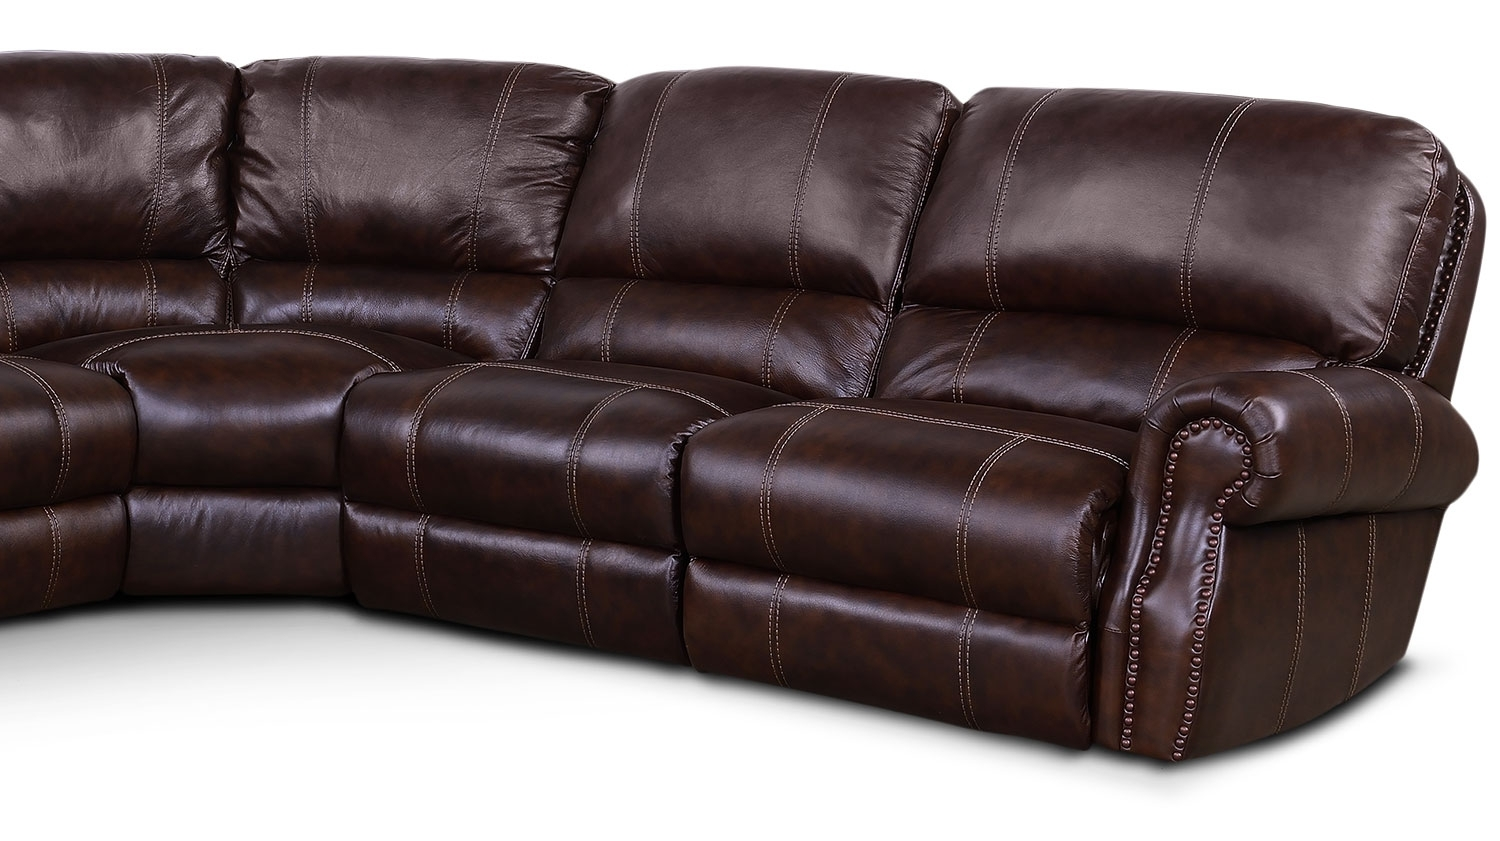 Dartmouth 6 Piece Power Reclining Sectional W/ Left Facing Chaise Pertaining To Norfolk Chocolate 6 Piece Sectionals With Laf Chaise (View 7 of 25)